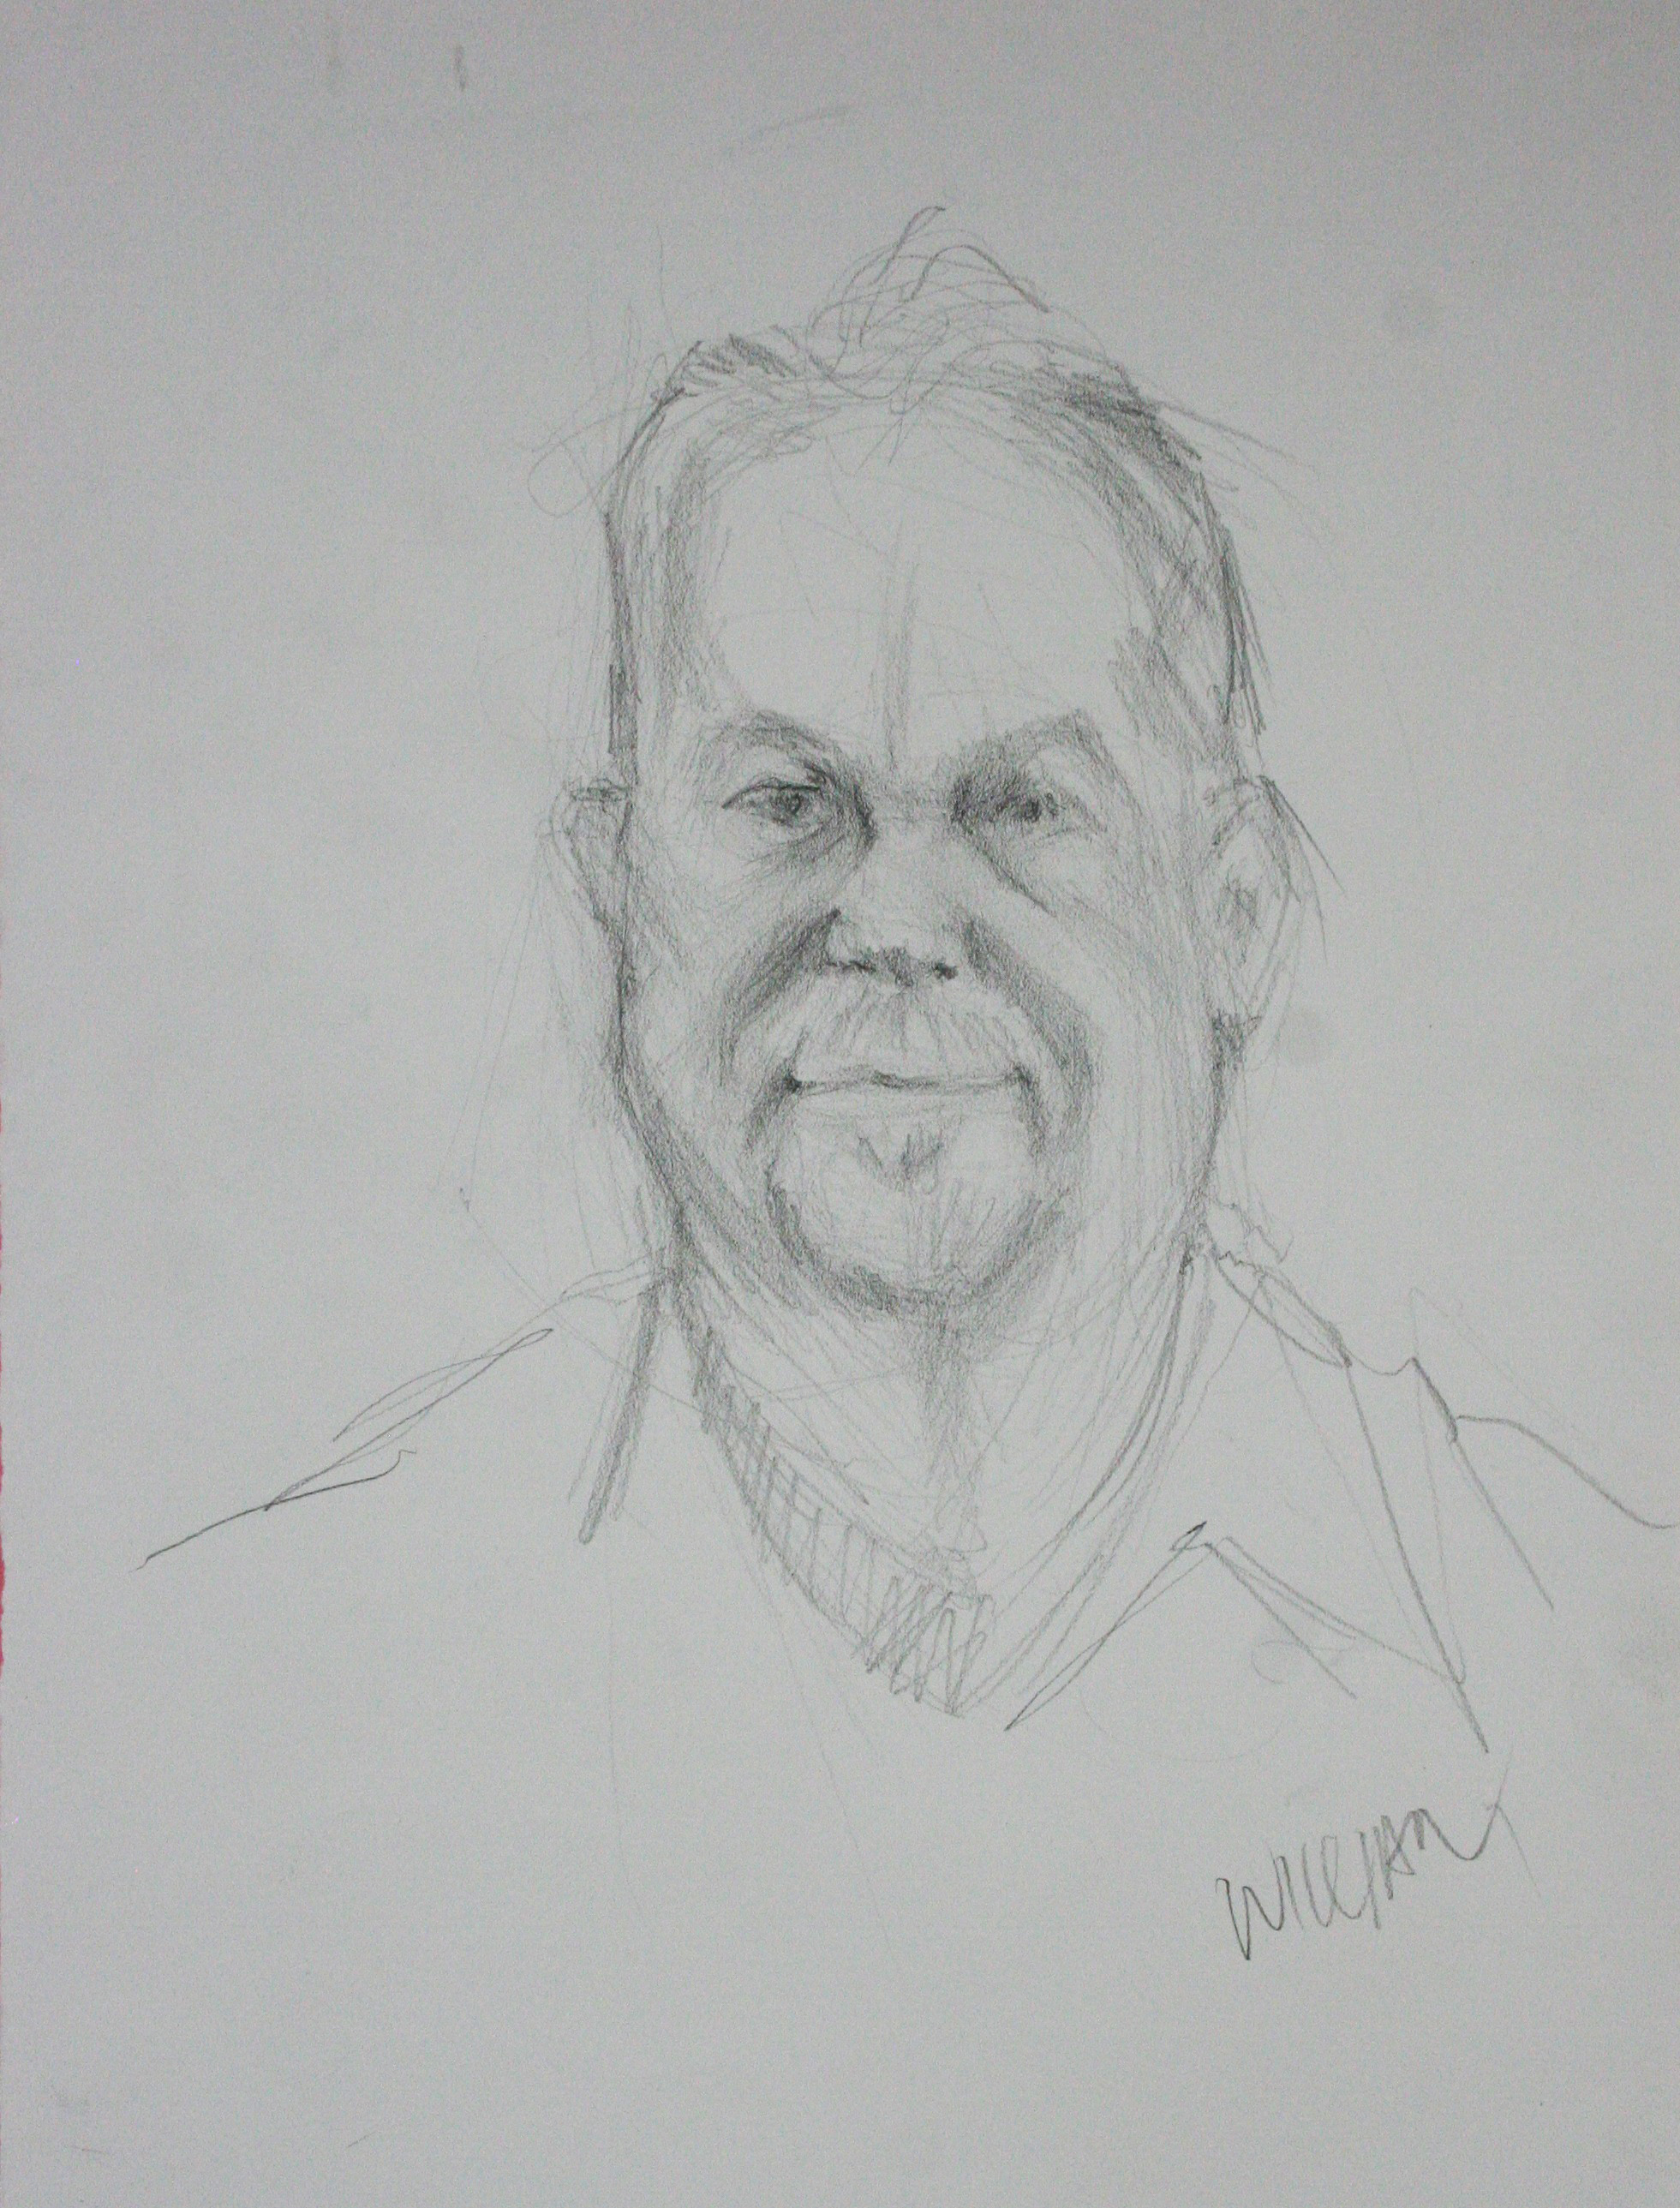 William Leddy did this half hour sketch.